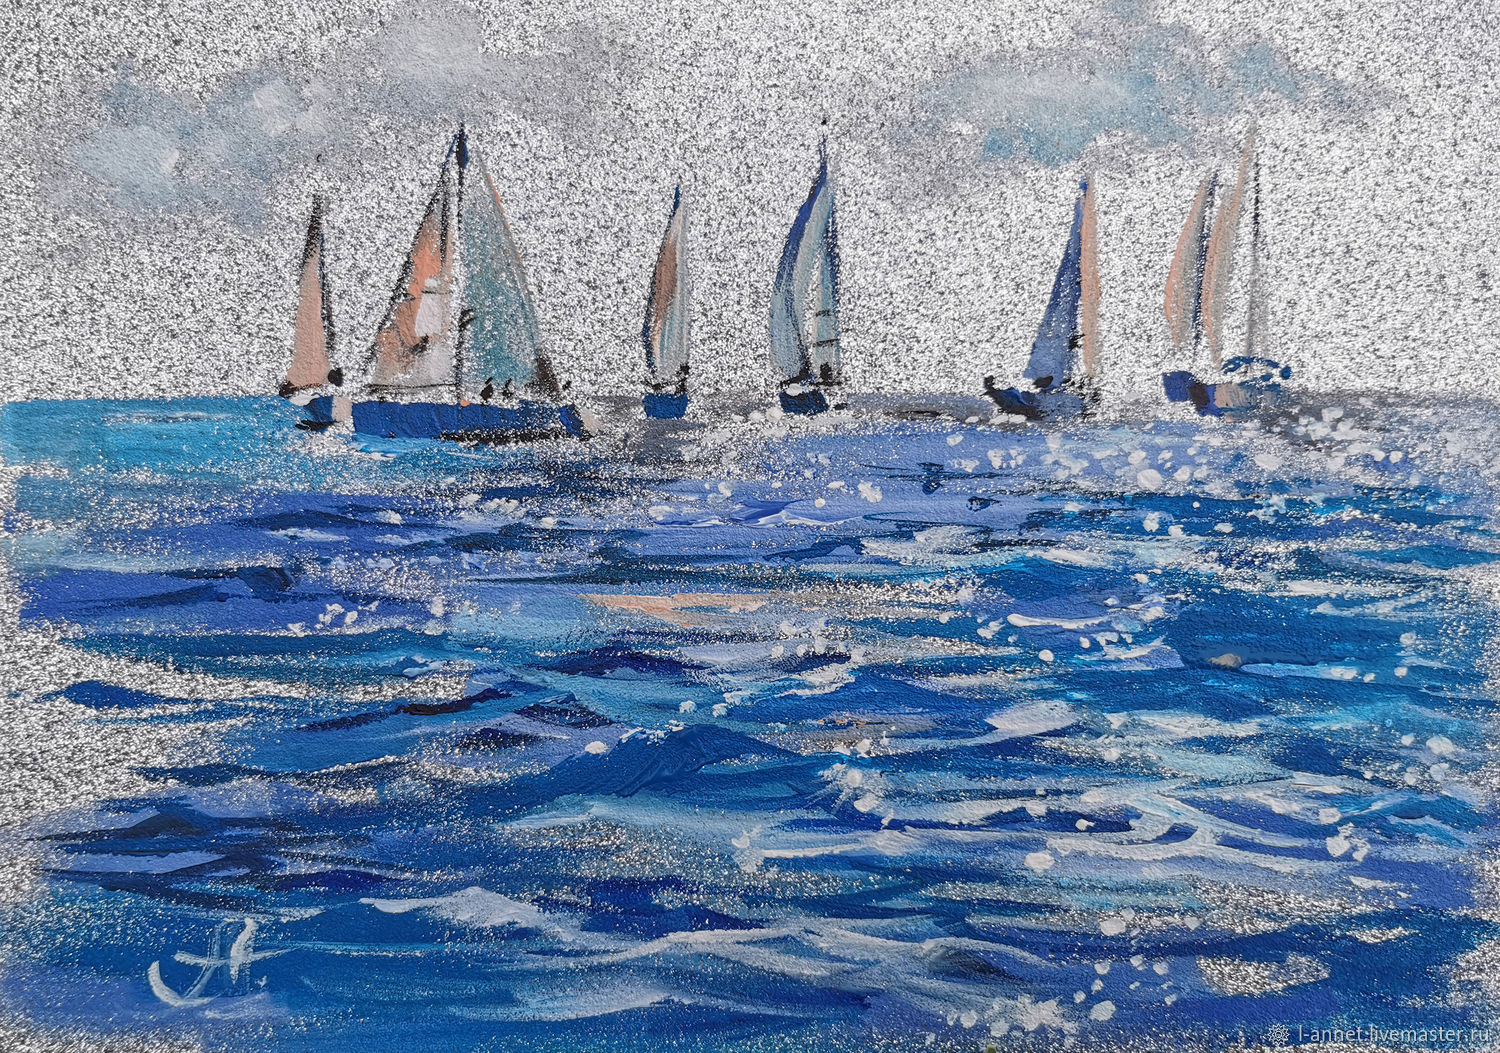 Yachts silver-painting with the sea, Pictures, Moscow,  Фото №1